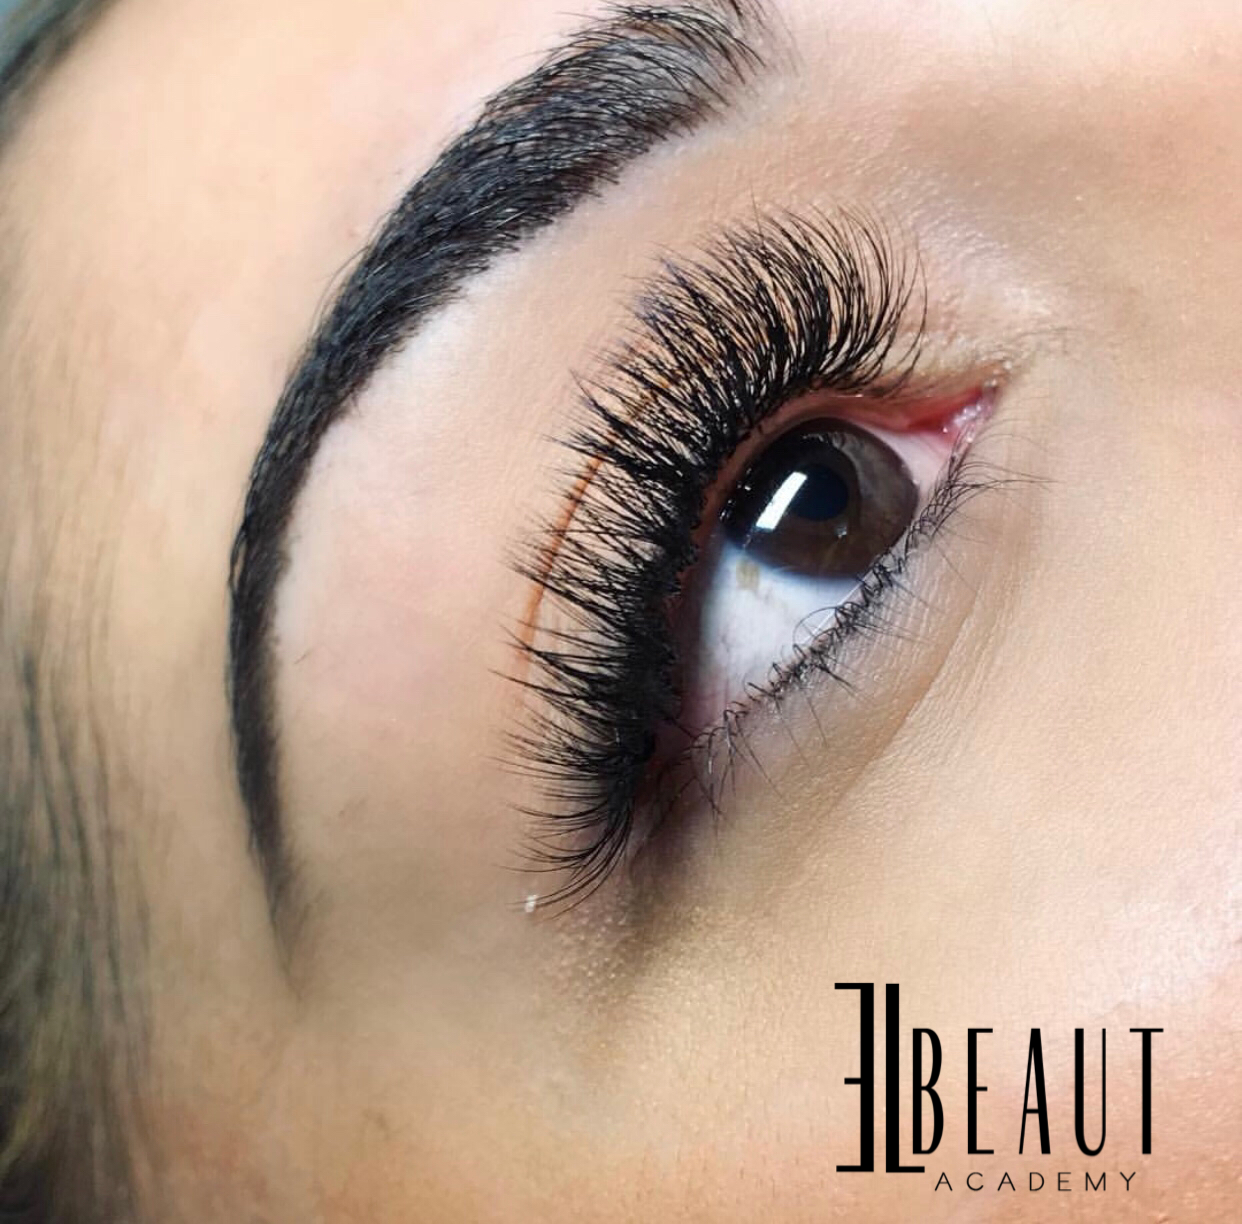 Pin By El Beaut On El Beaut Eyelash Extensions Pinterest